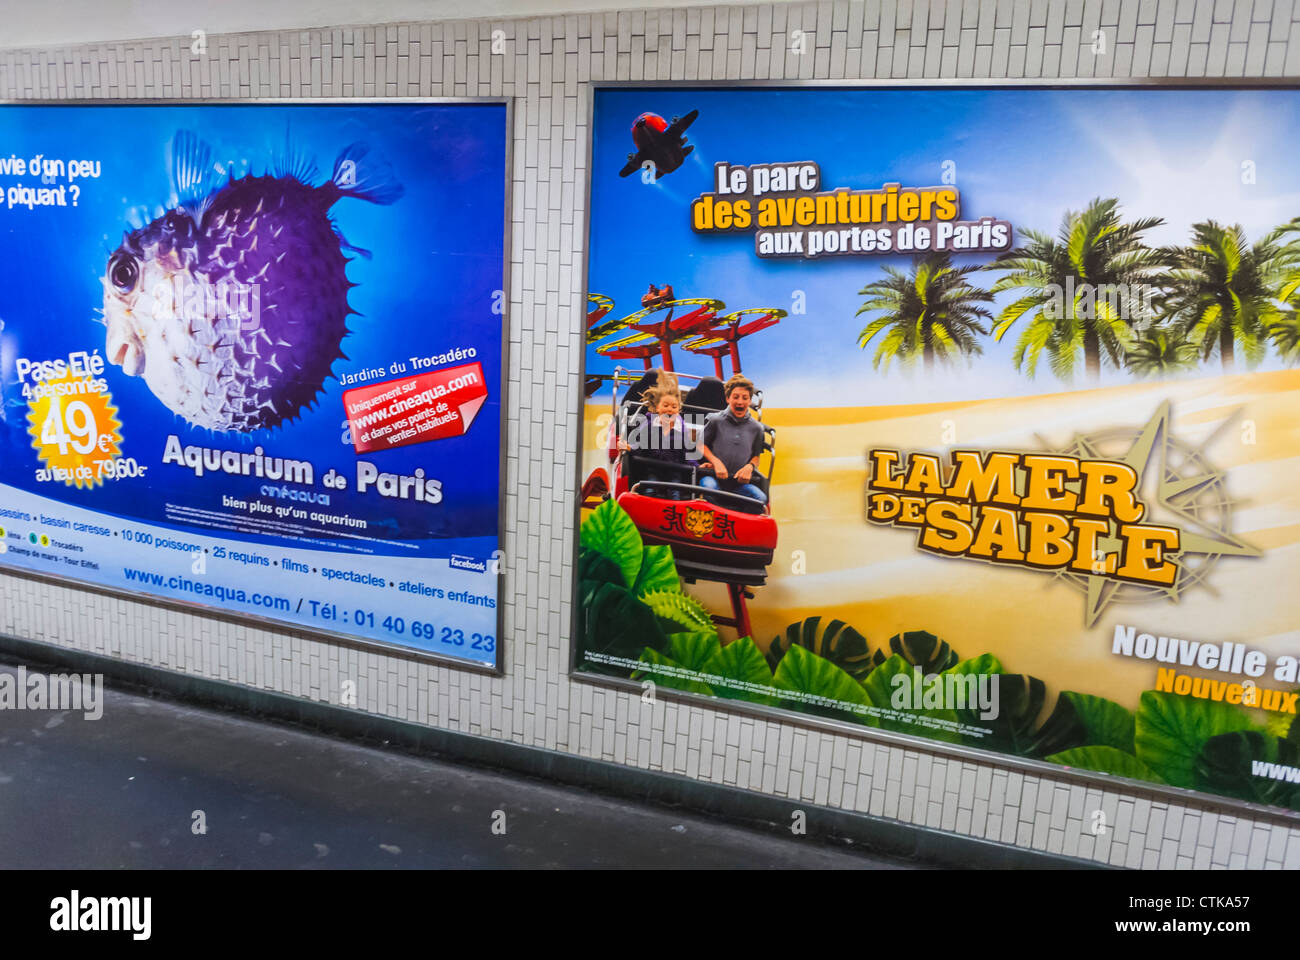 Paris, France, French Travel Advertising Posters in Metro Hallway - Stock Image